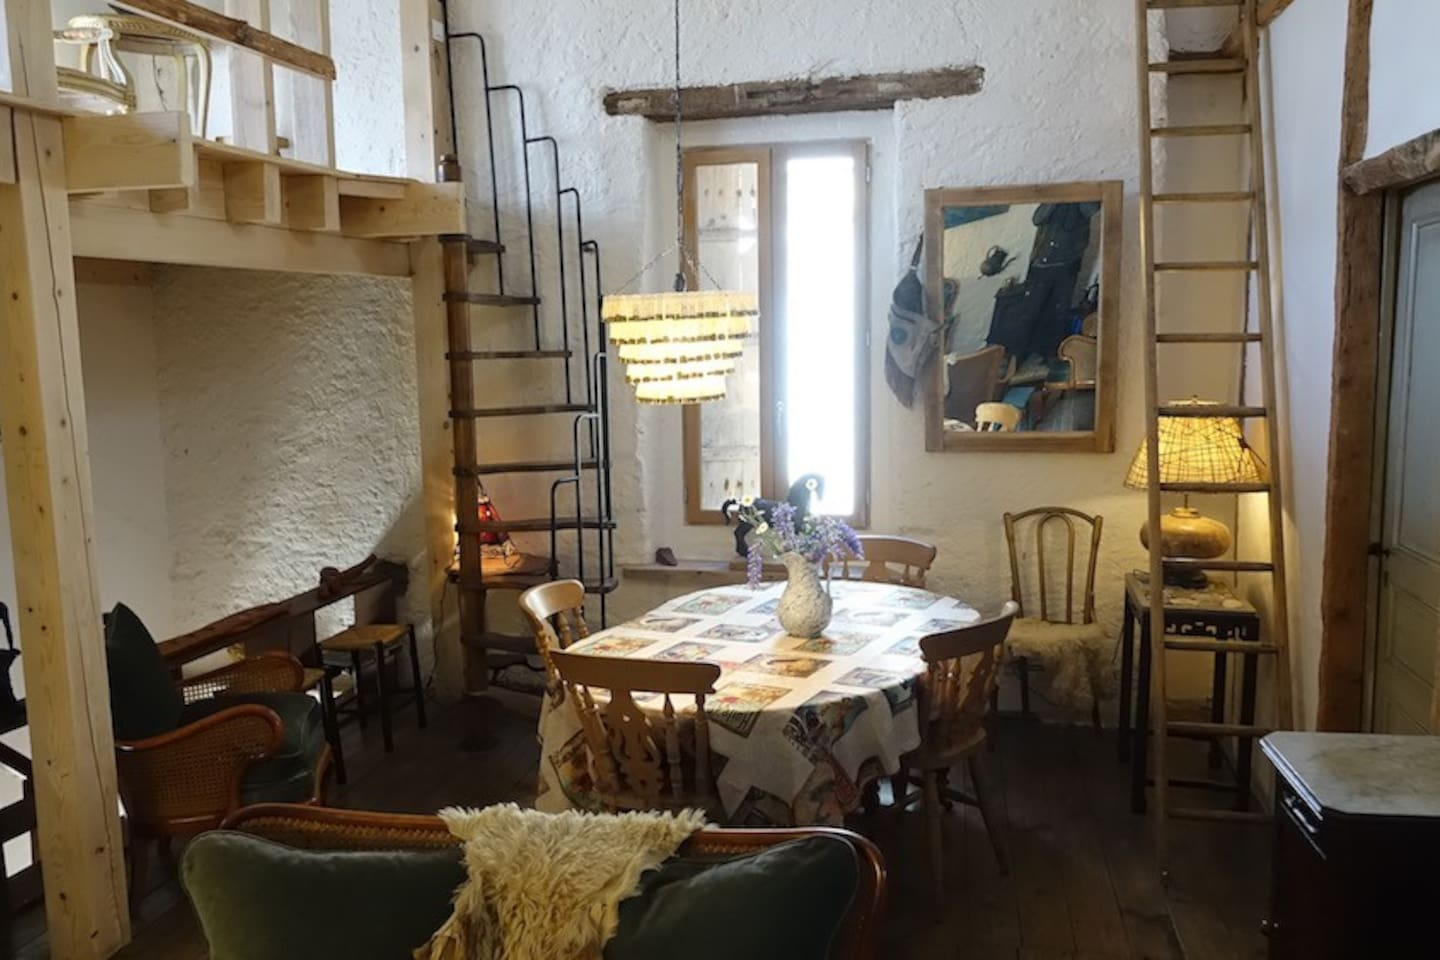 Upstairs Dining Room with stairs to a single bed loft